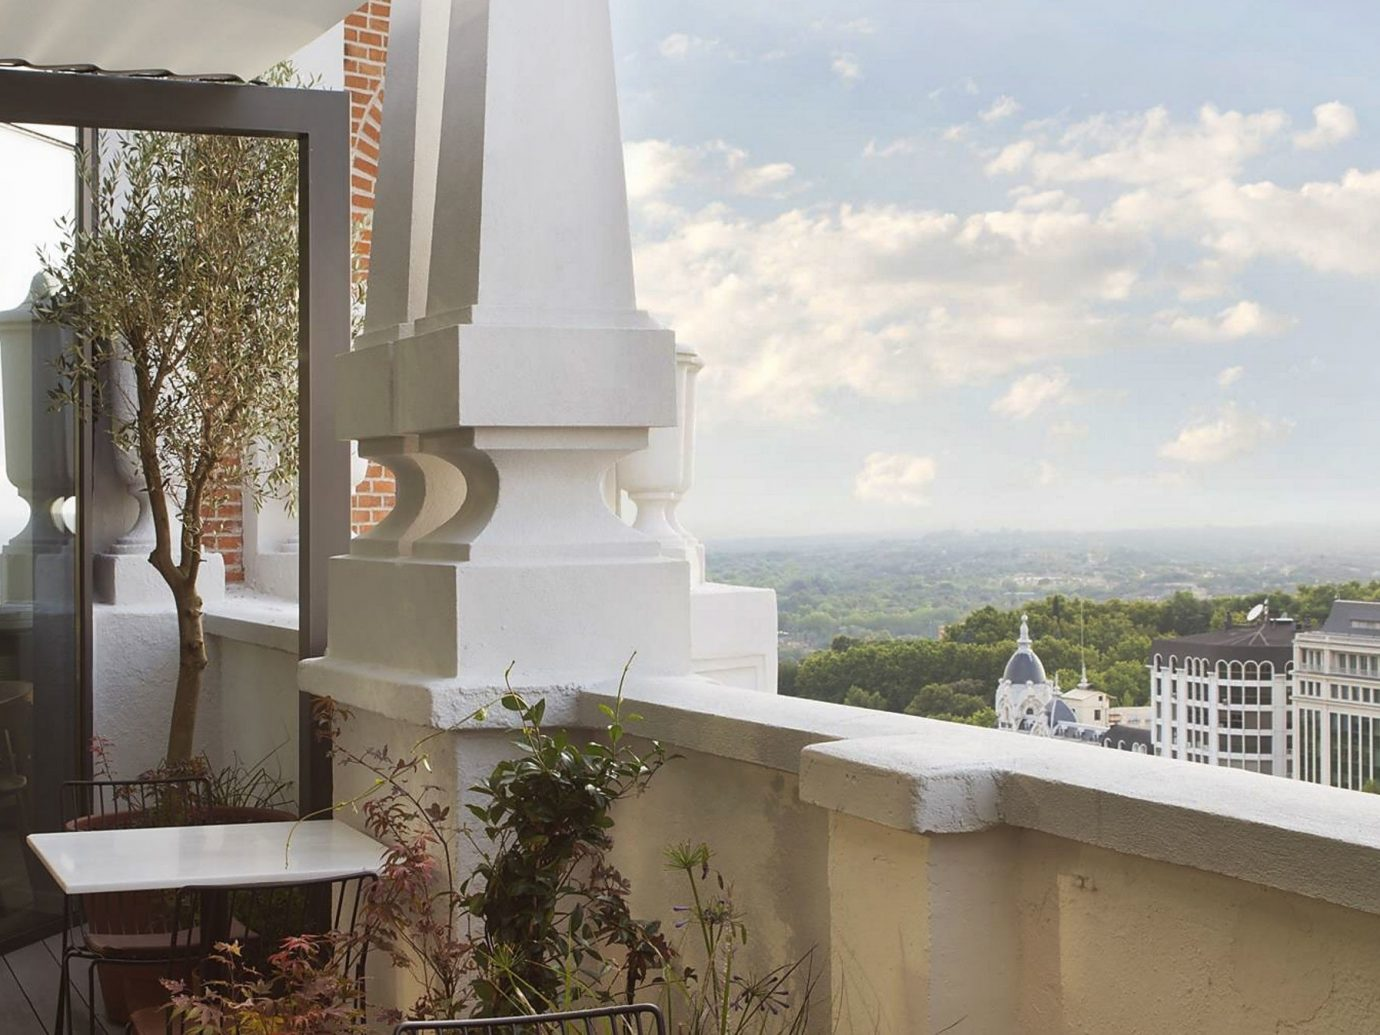 Hotels property building house Architecture home estate Balcony Villa baluster mansion apartment